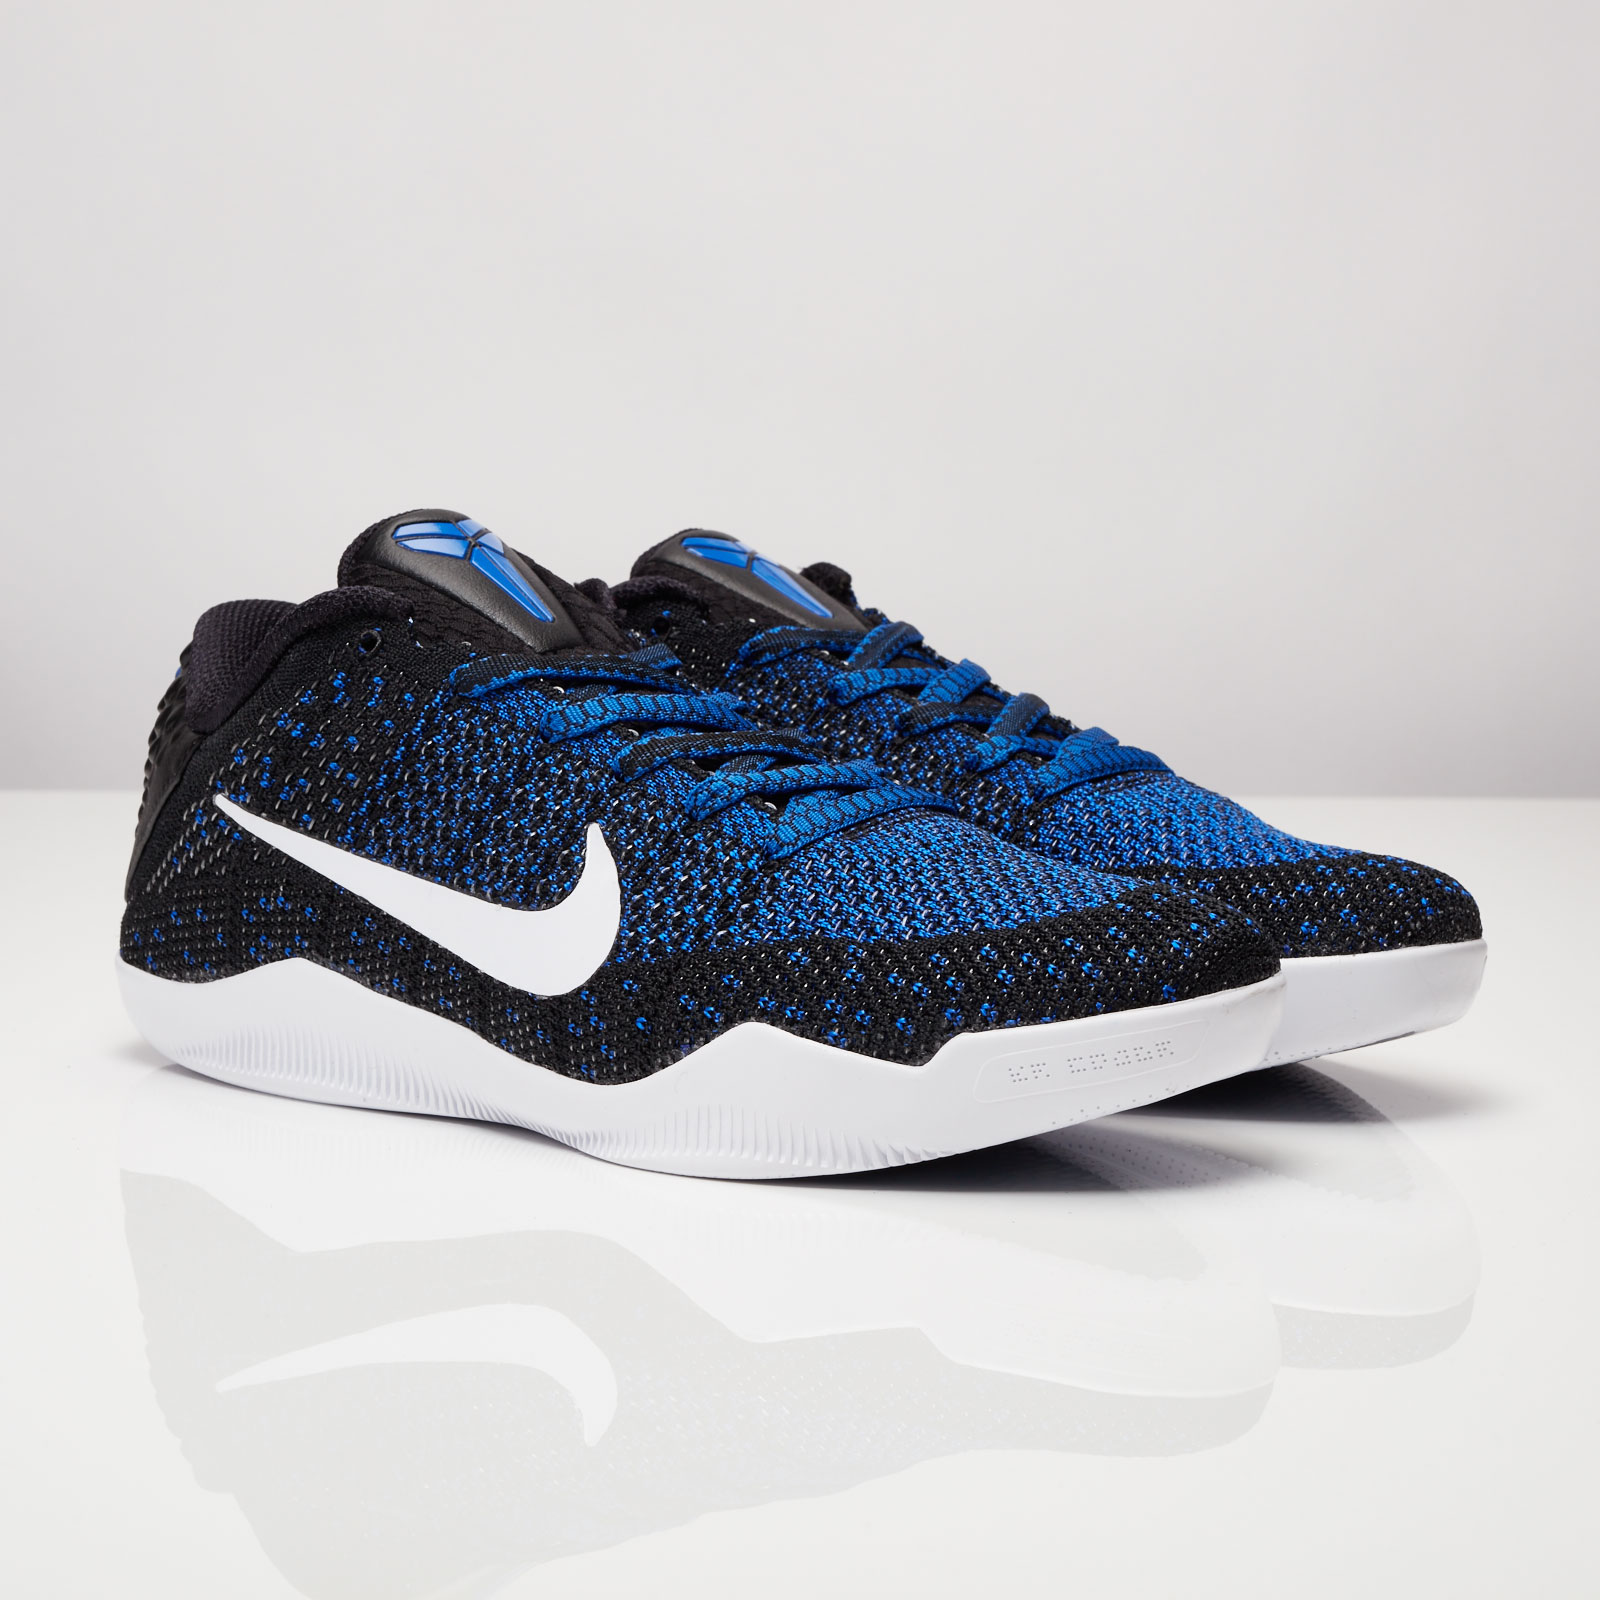 finest selection 1736c 75c4f Nike Kobe XI Elite Low